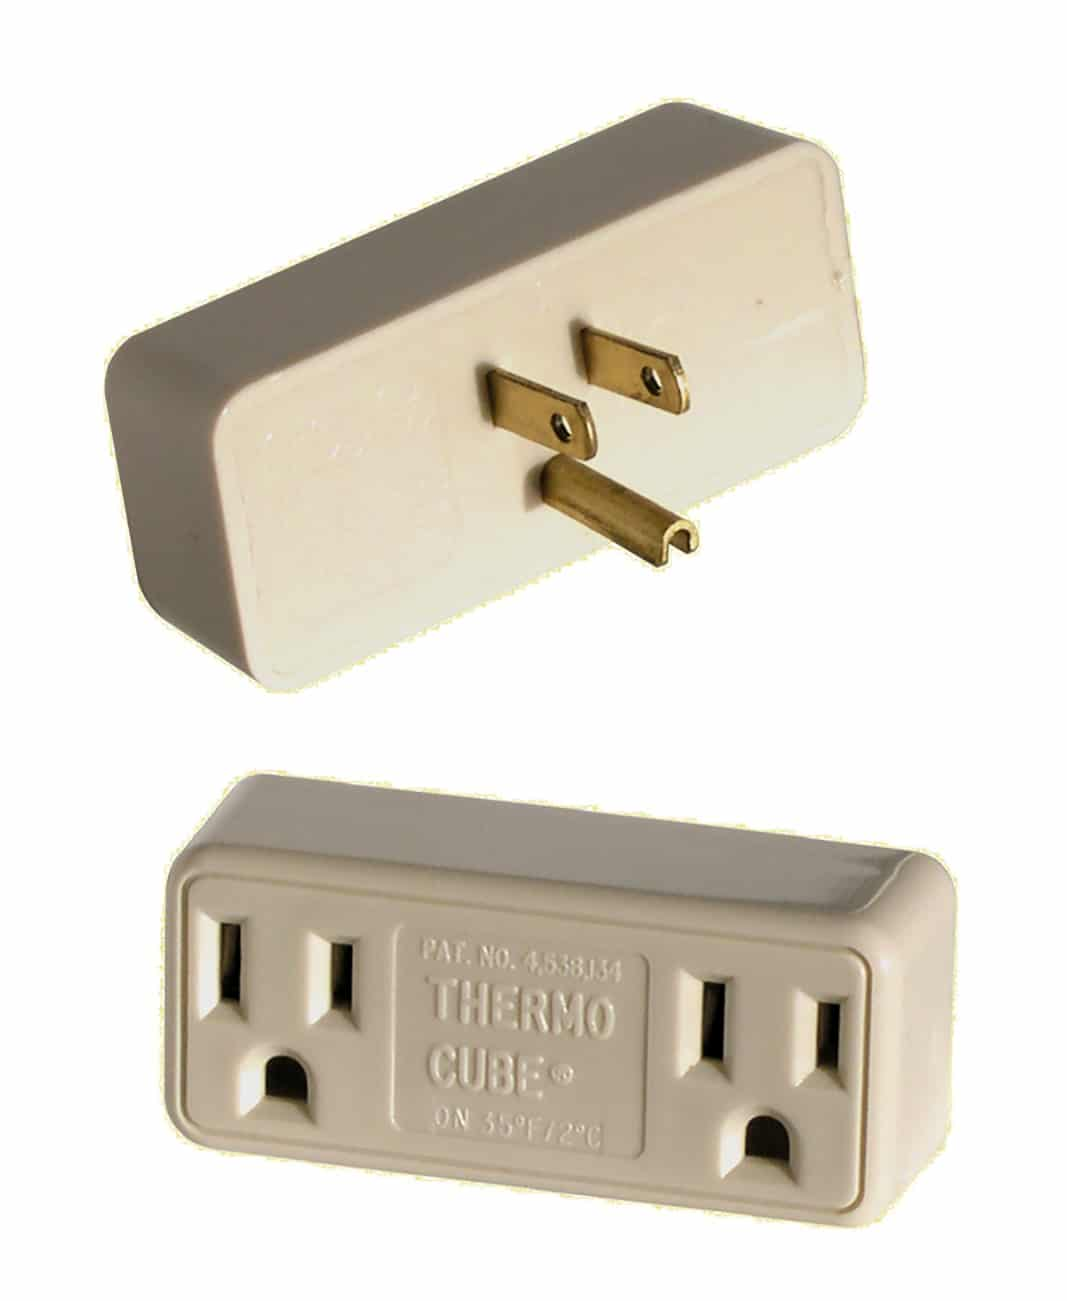 Thermostatically Controlled Outlet review